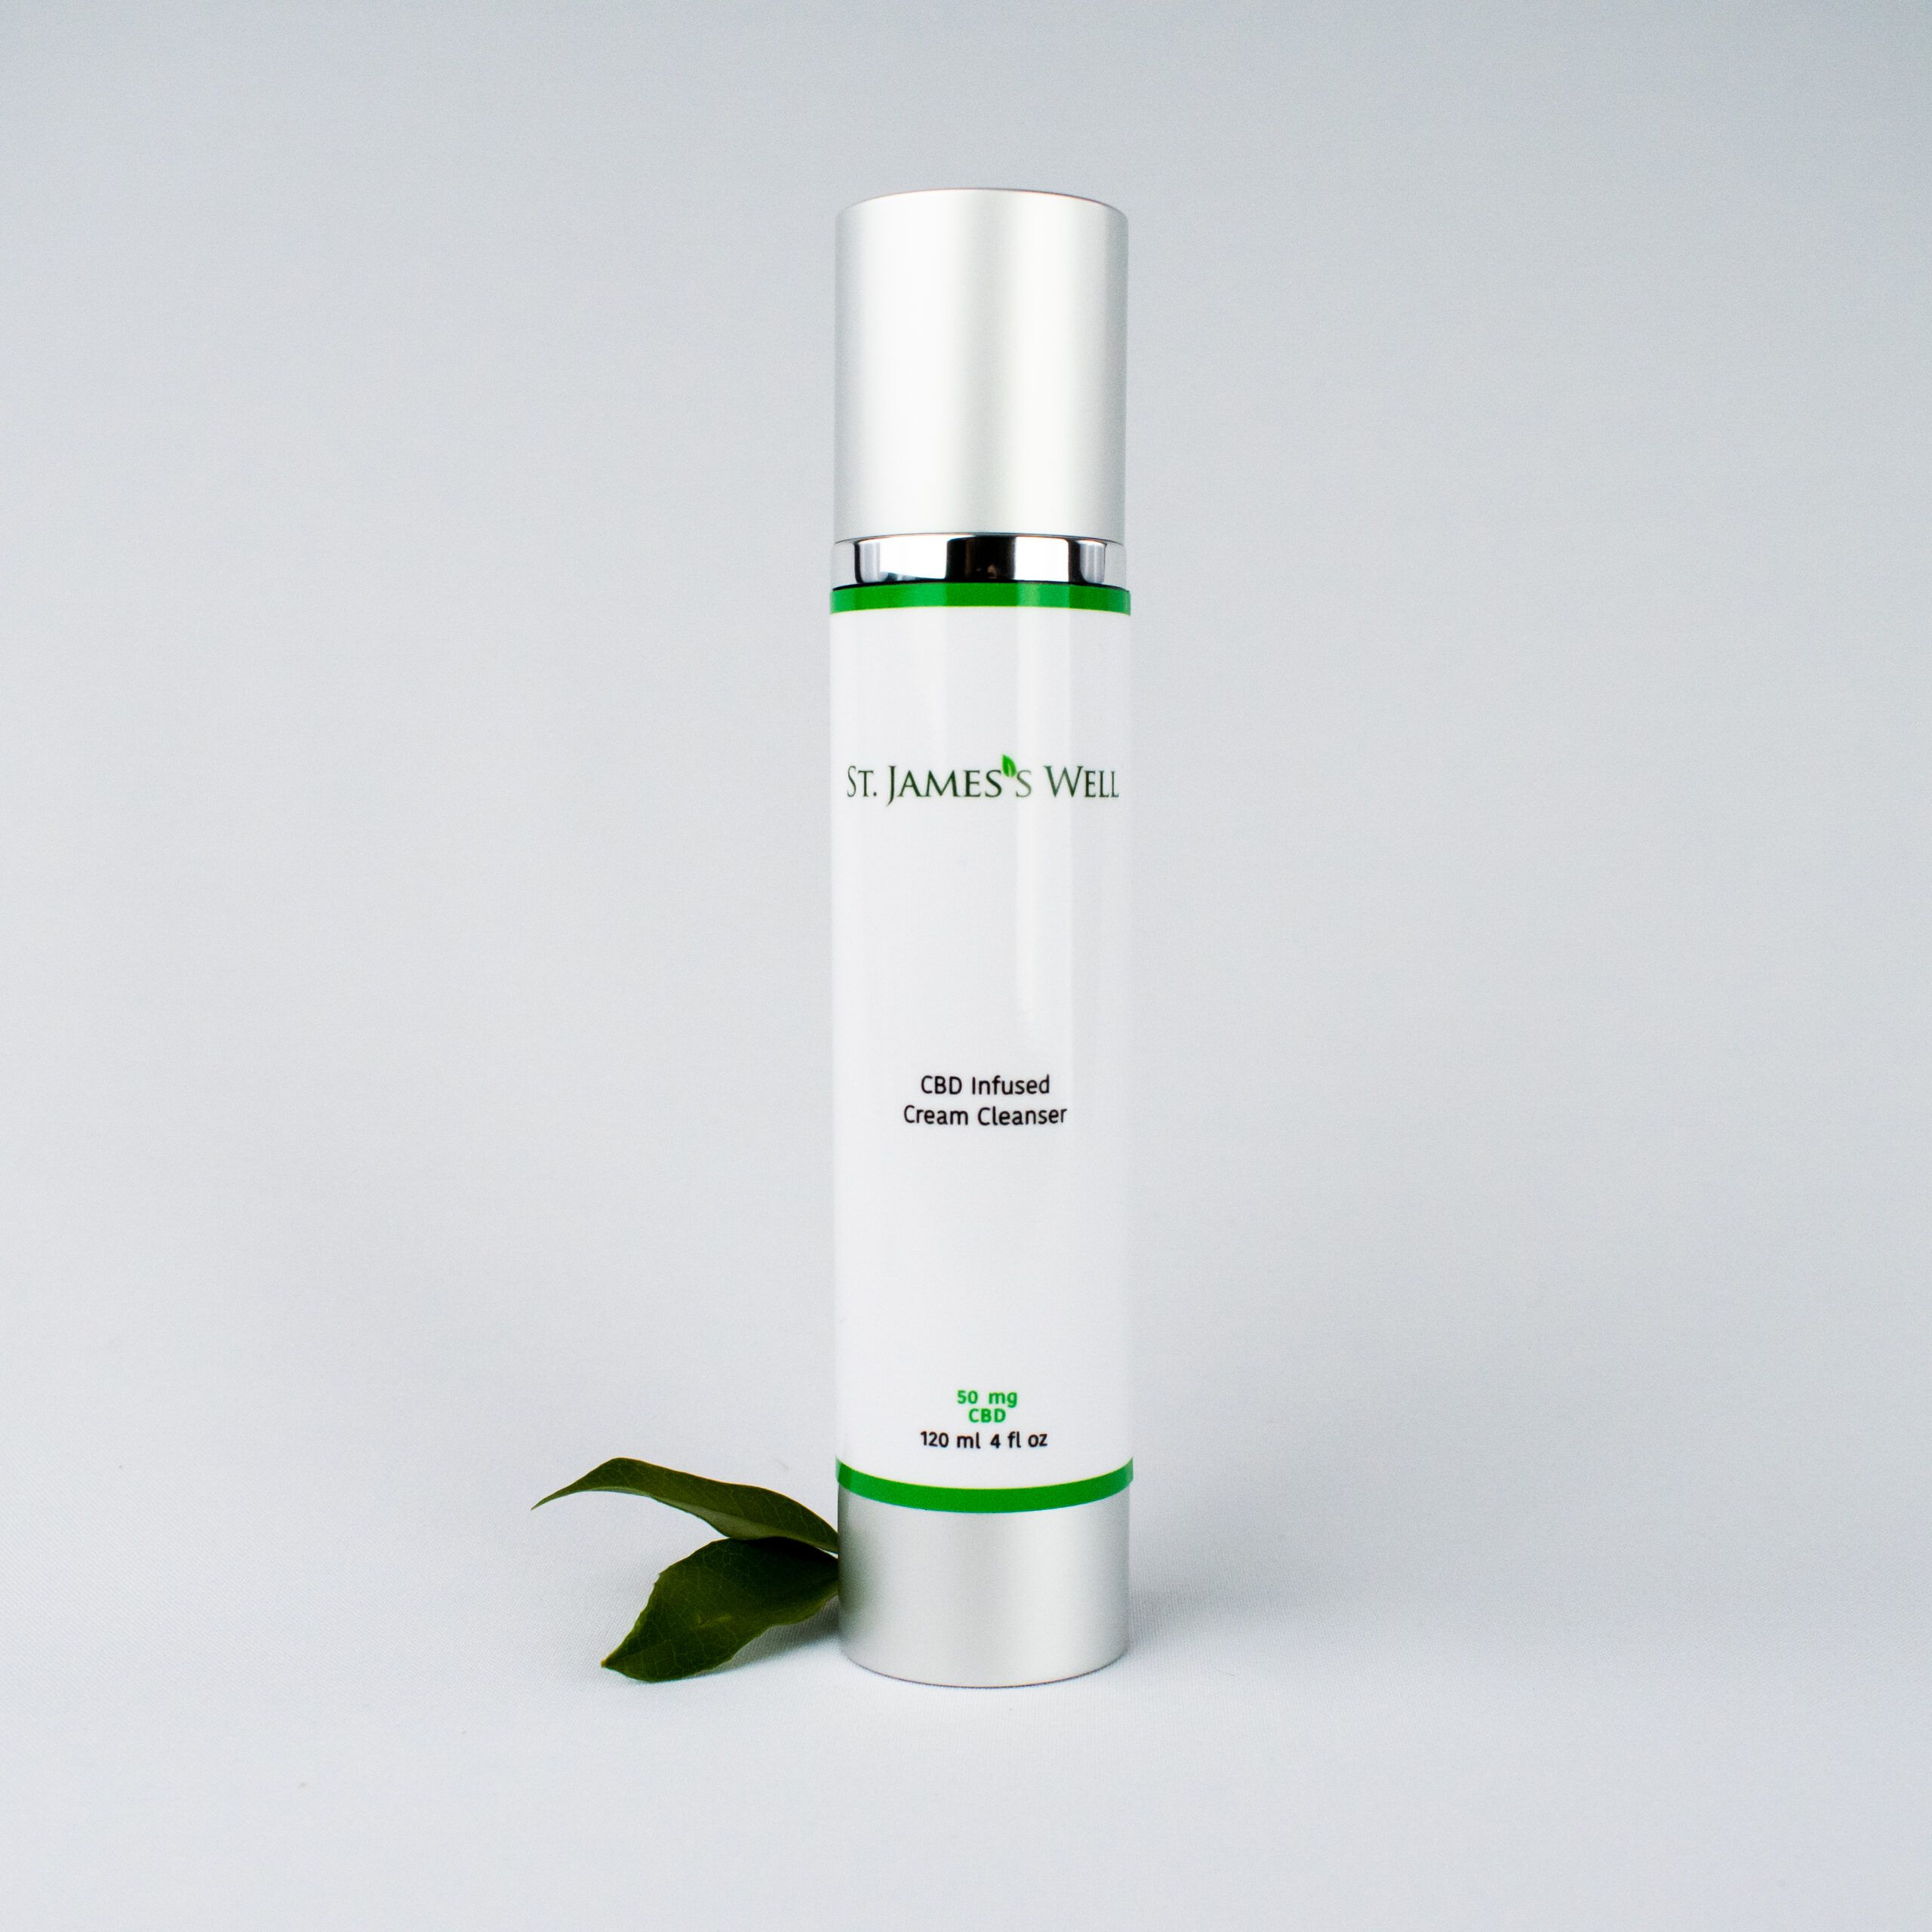 St. James's Well CBD Infused Cream Cleanser With Leaf